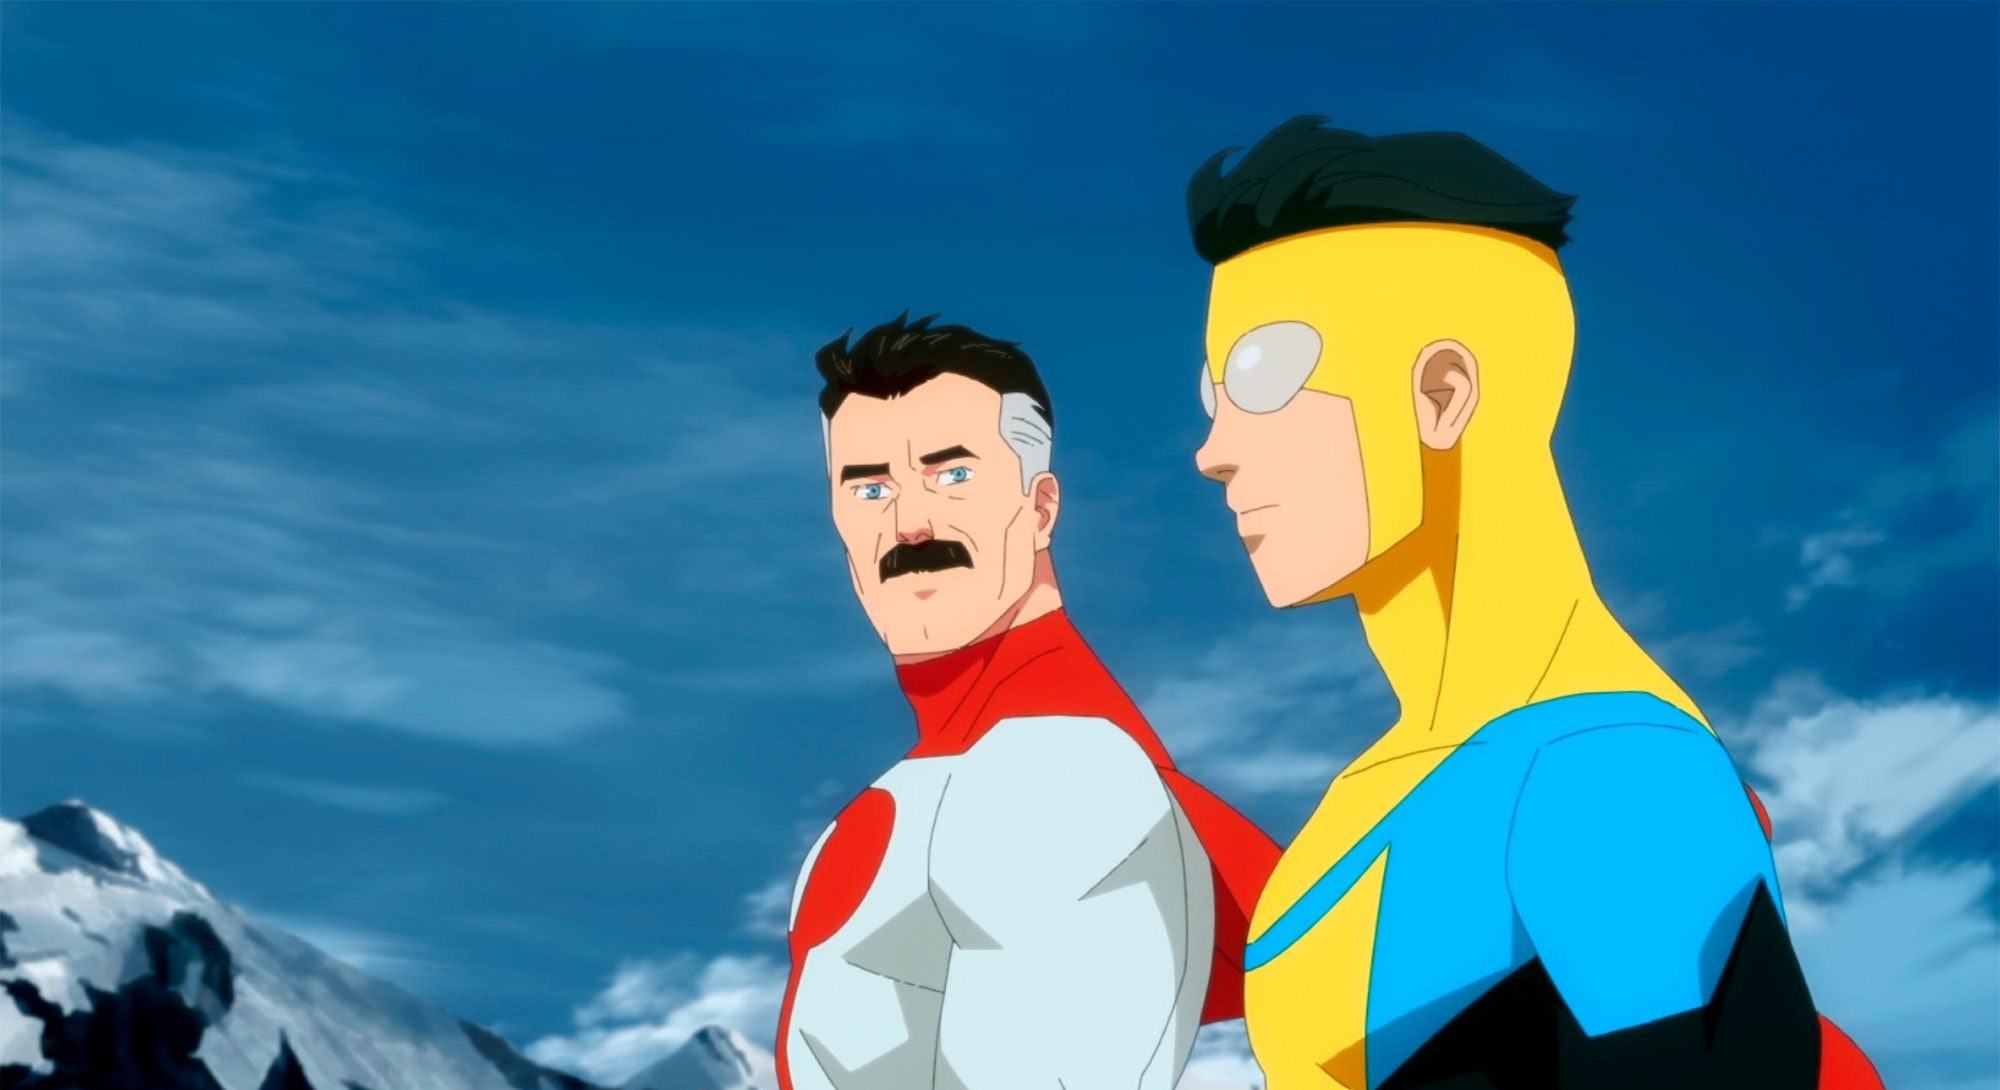 Invincible – When Does Season 2 Come Out? Release Date Explored